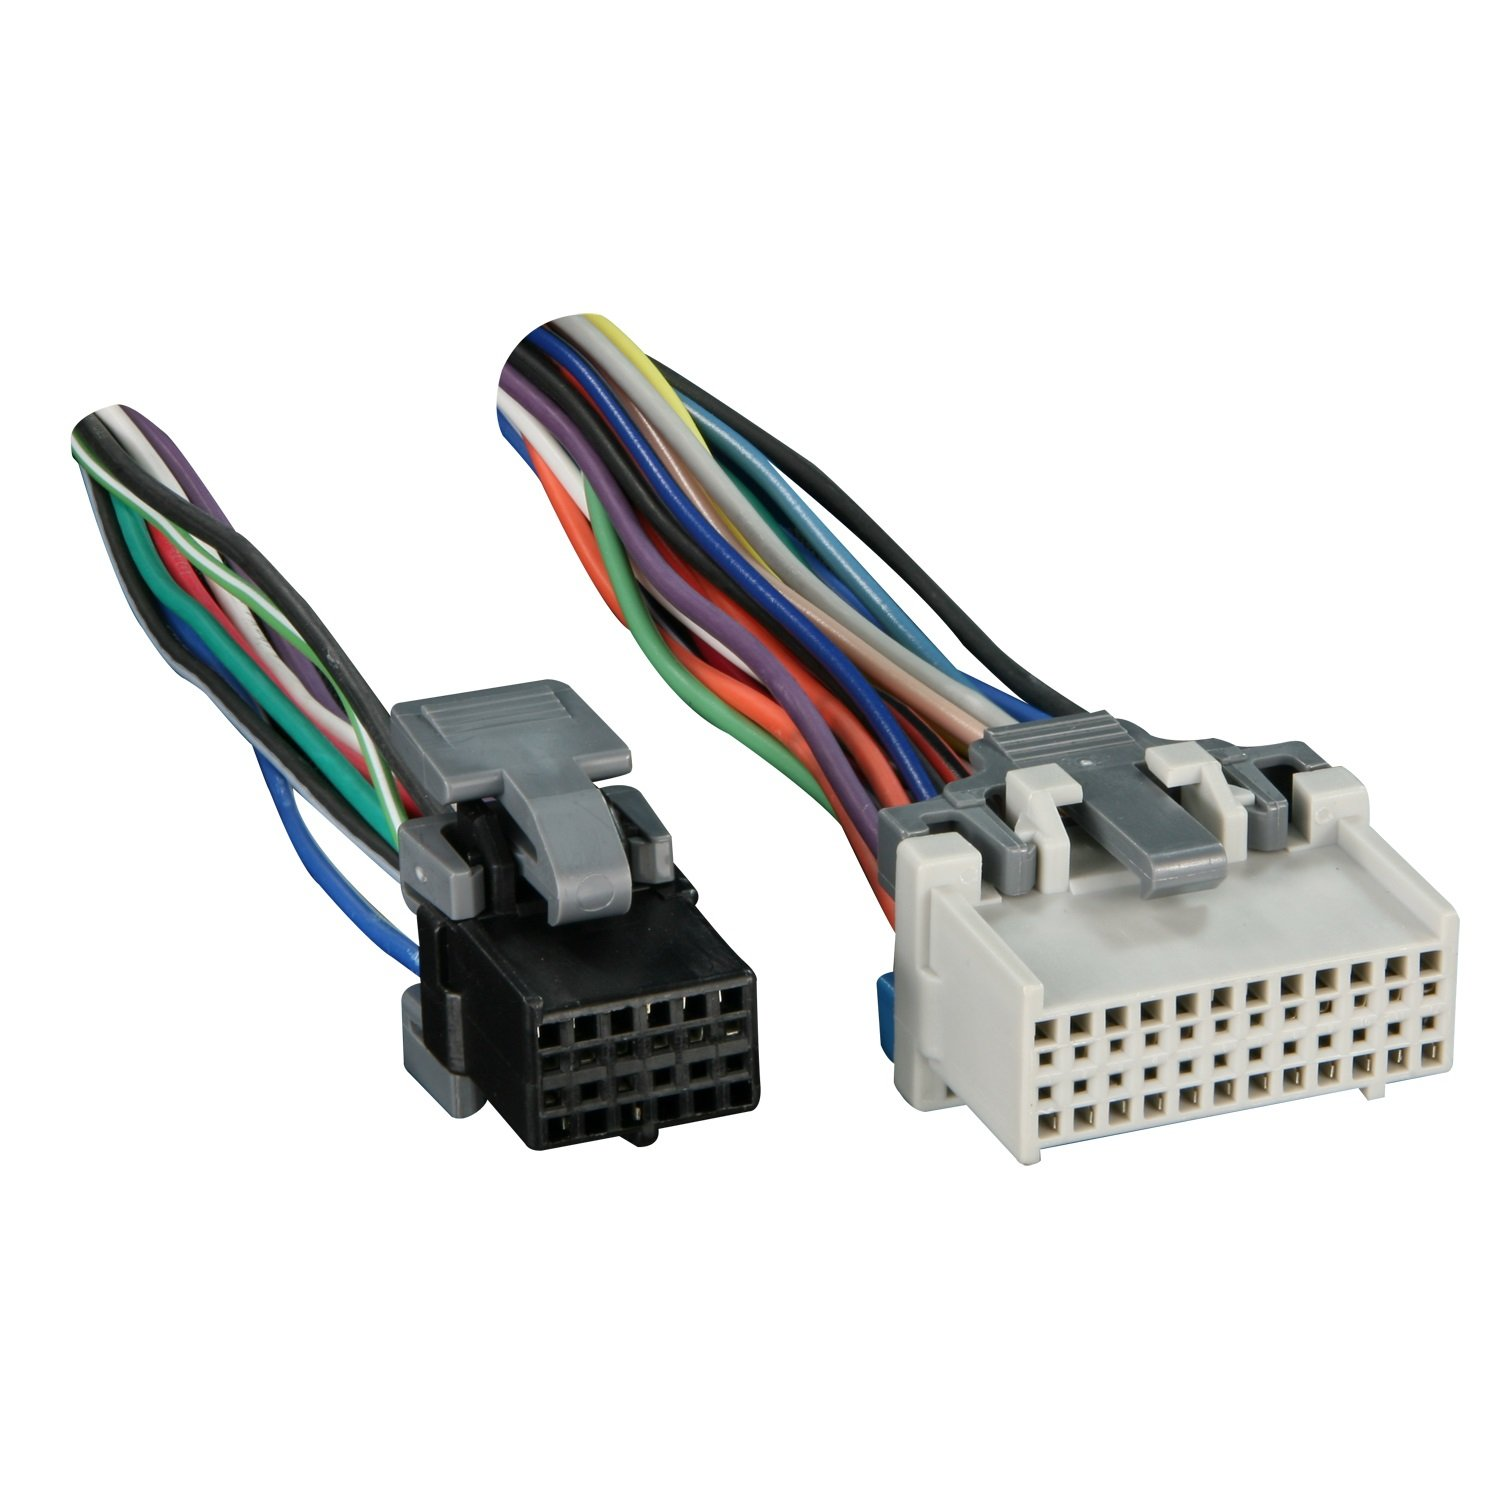 711log4bdML._SL1500_ amazon com metra turbowires 71 2003 1 wiring harness car electronics gm wiring harness connectors at bayanpartner.co